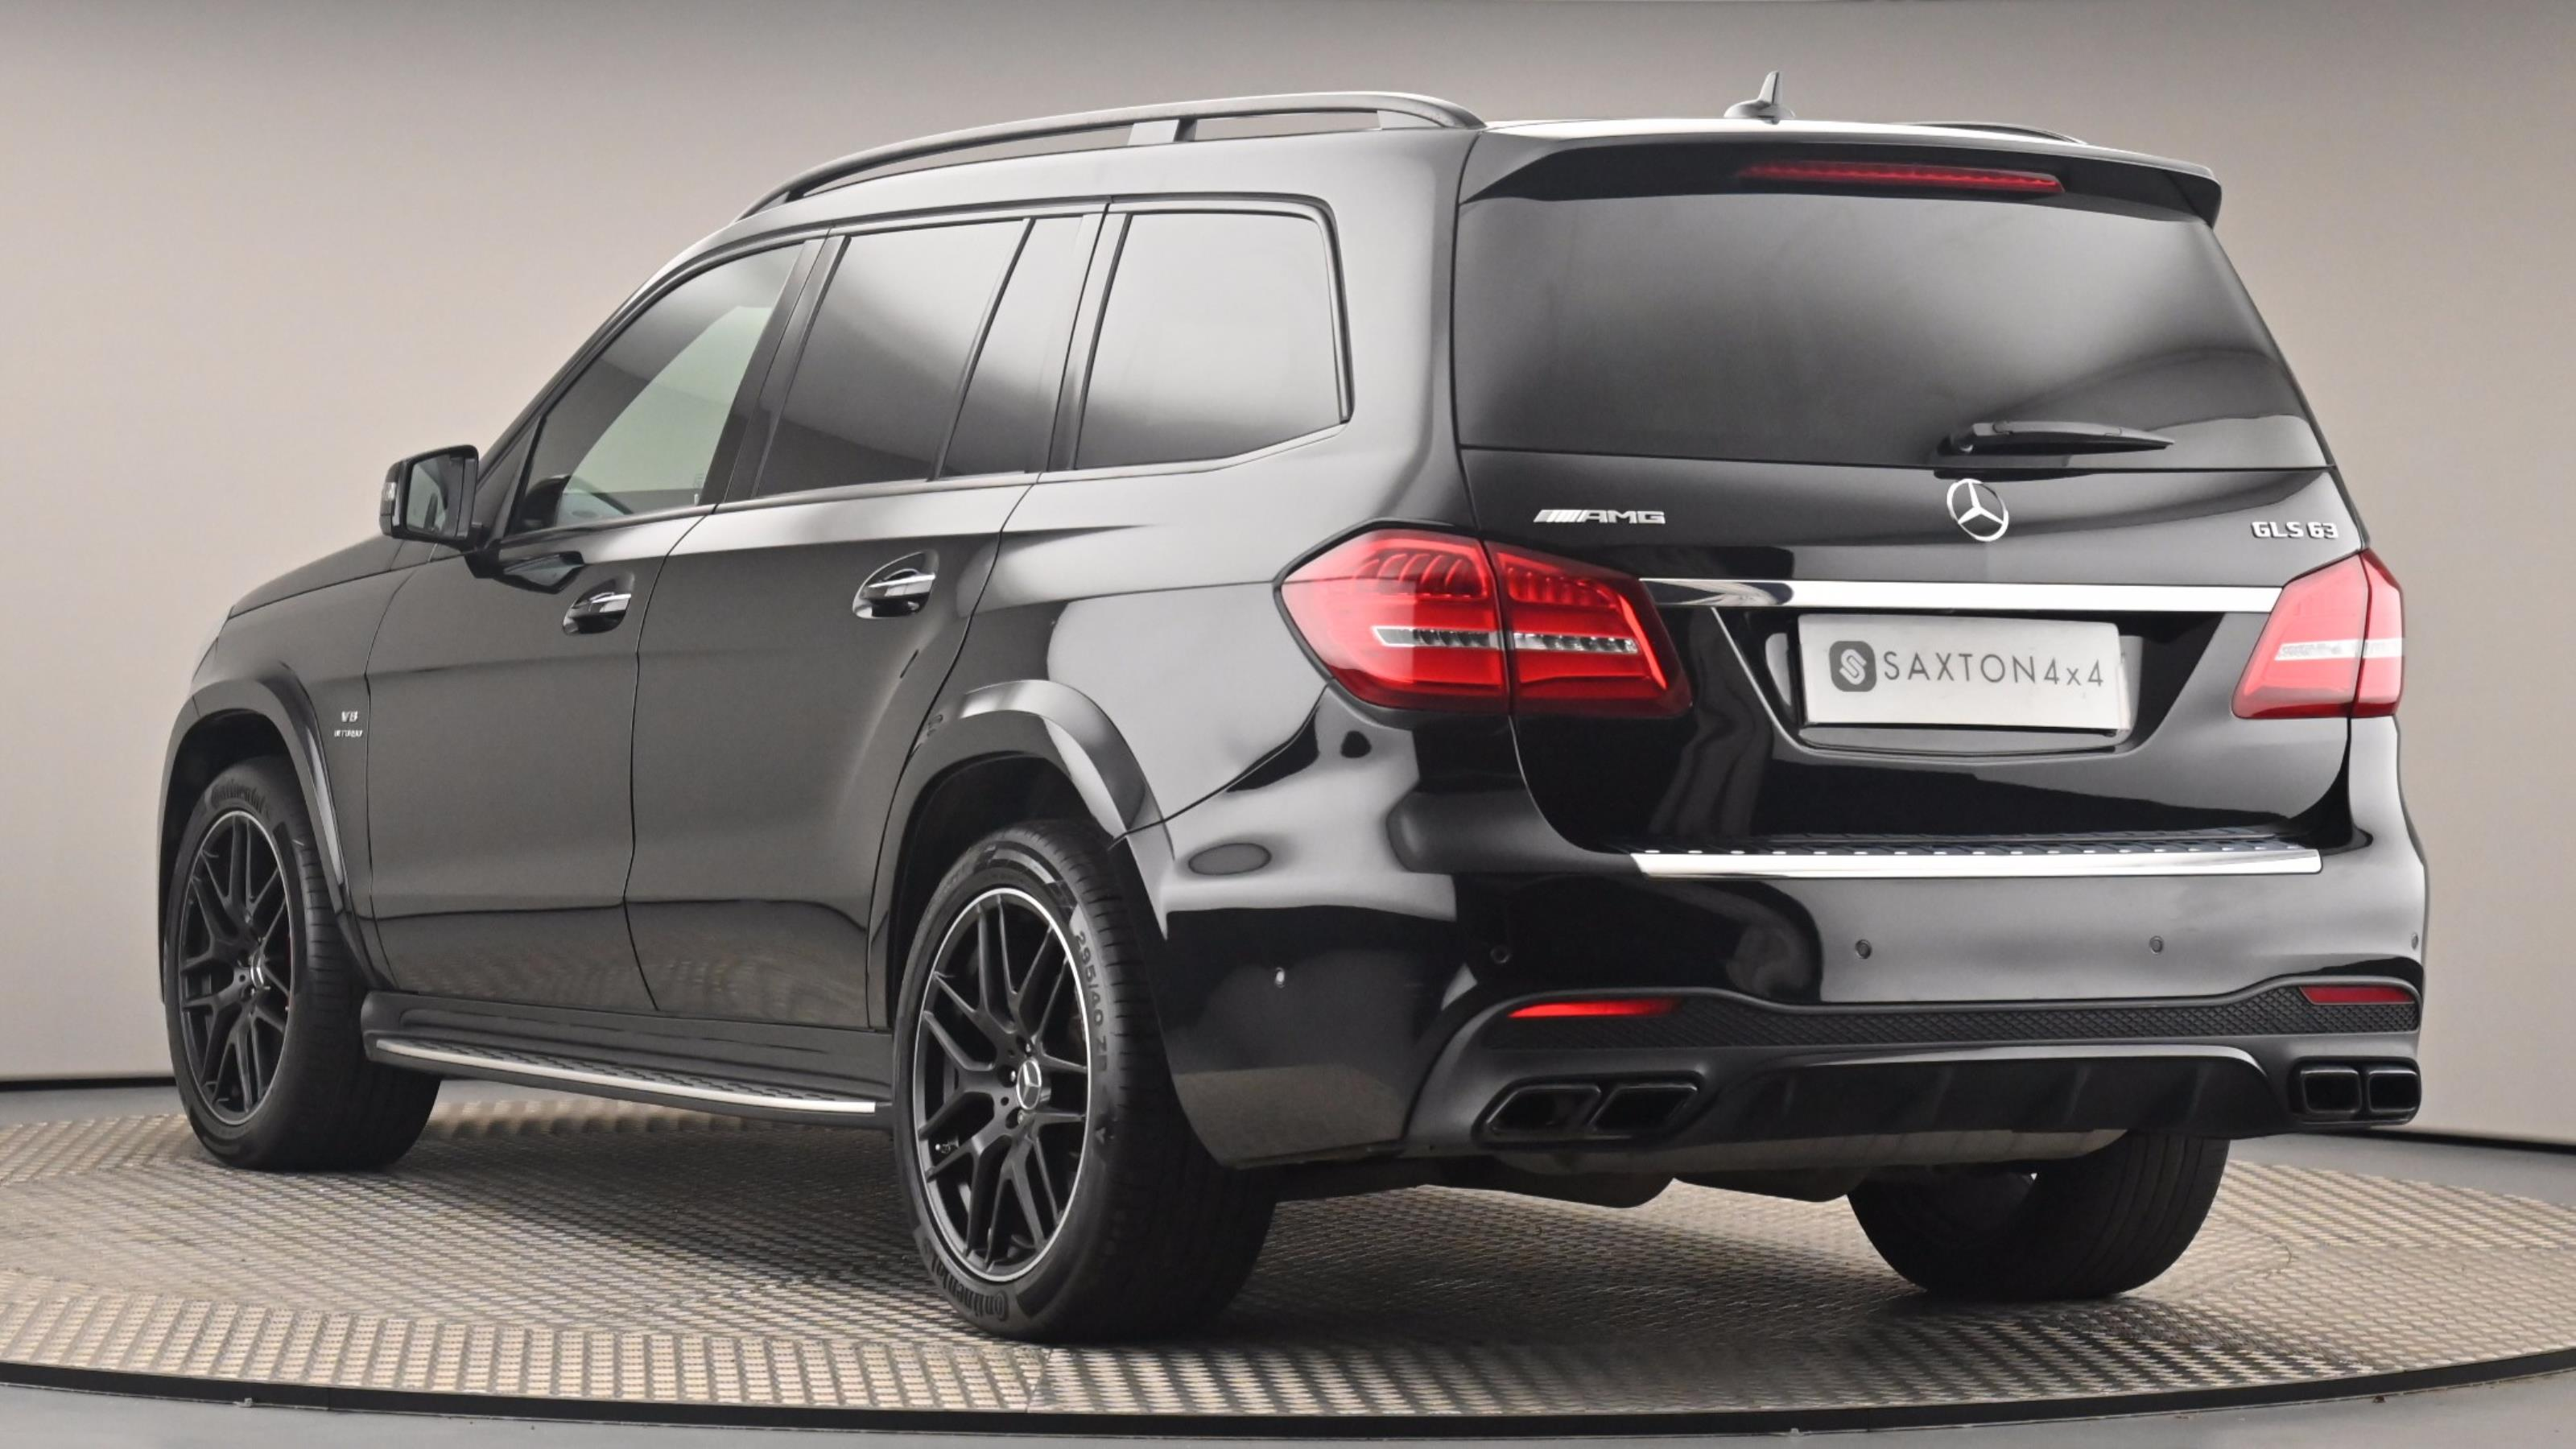 Used 2017 Mercedes-Benz GLS AMG GLS 63 4Matic 5dr 7G-Tronic BLACK at Saxton4x4